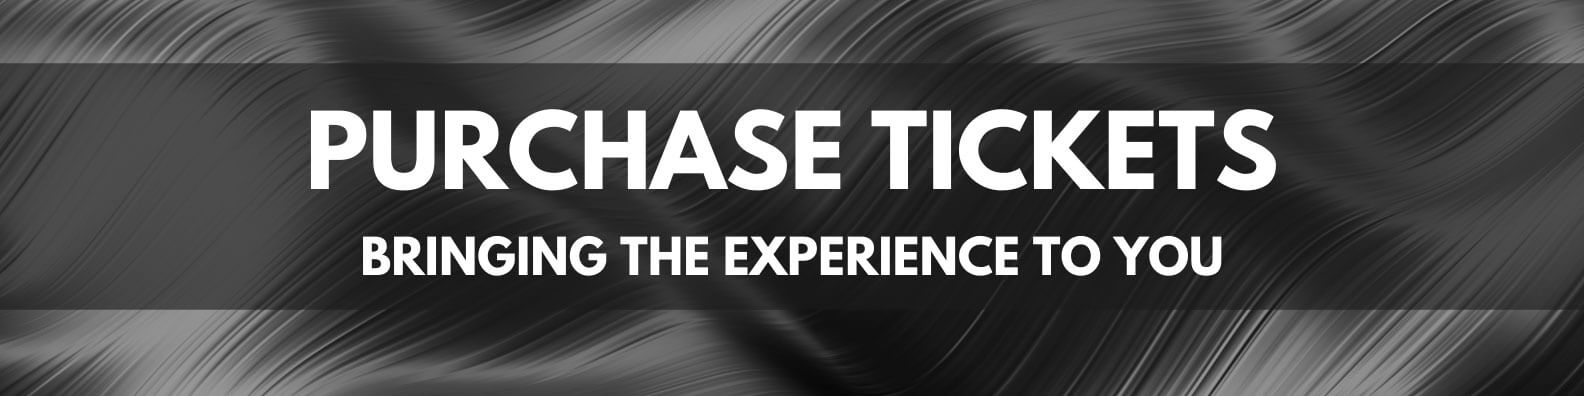 purchase tickets banner